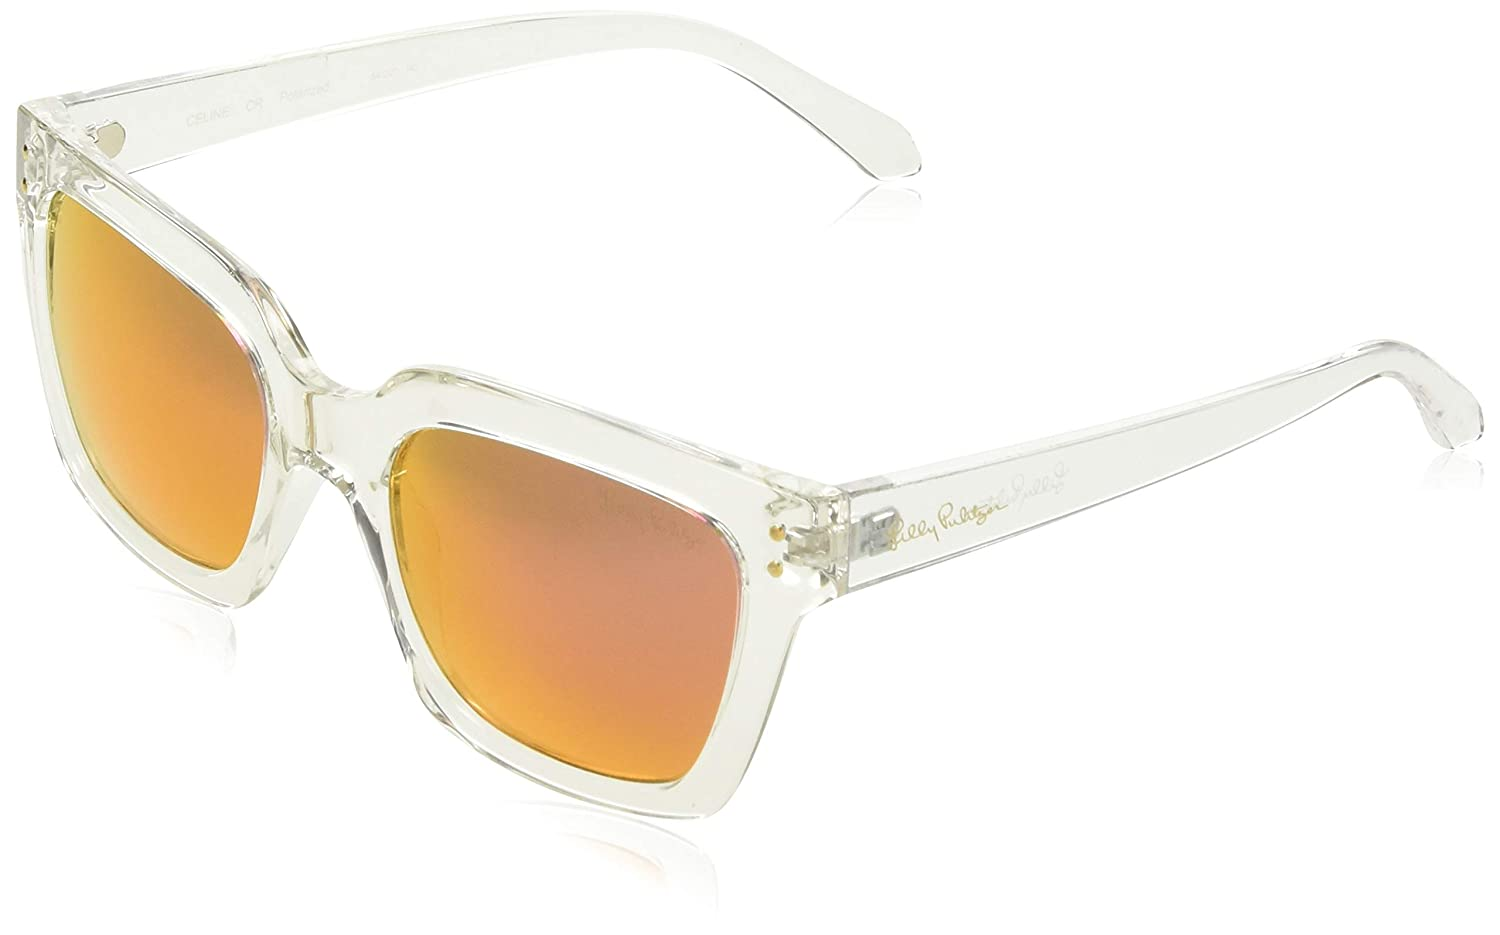 ea3569bedd Amazon.com  Lilly Pulitzer Women s Celine Polarized Square Sunglasses  Crystal Clear 54 mm  Clothing